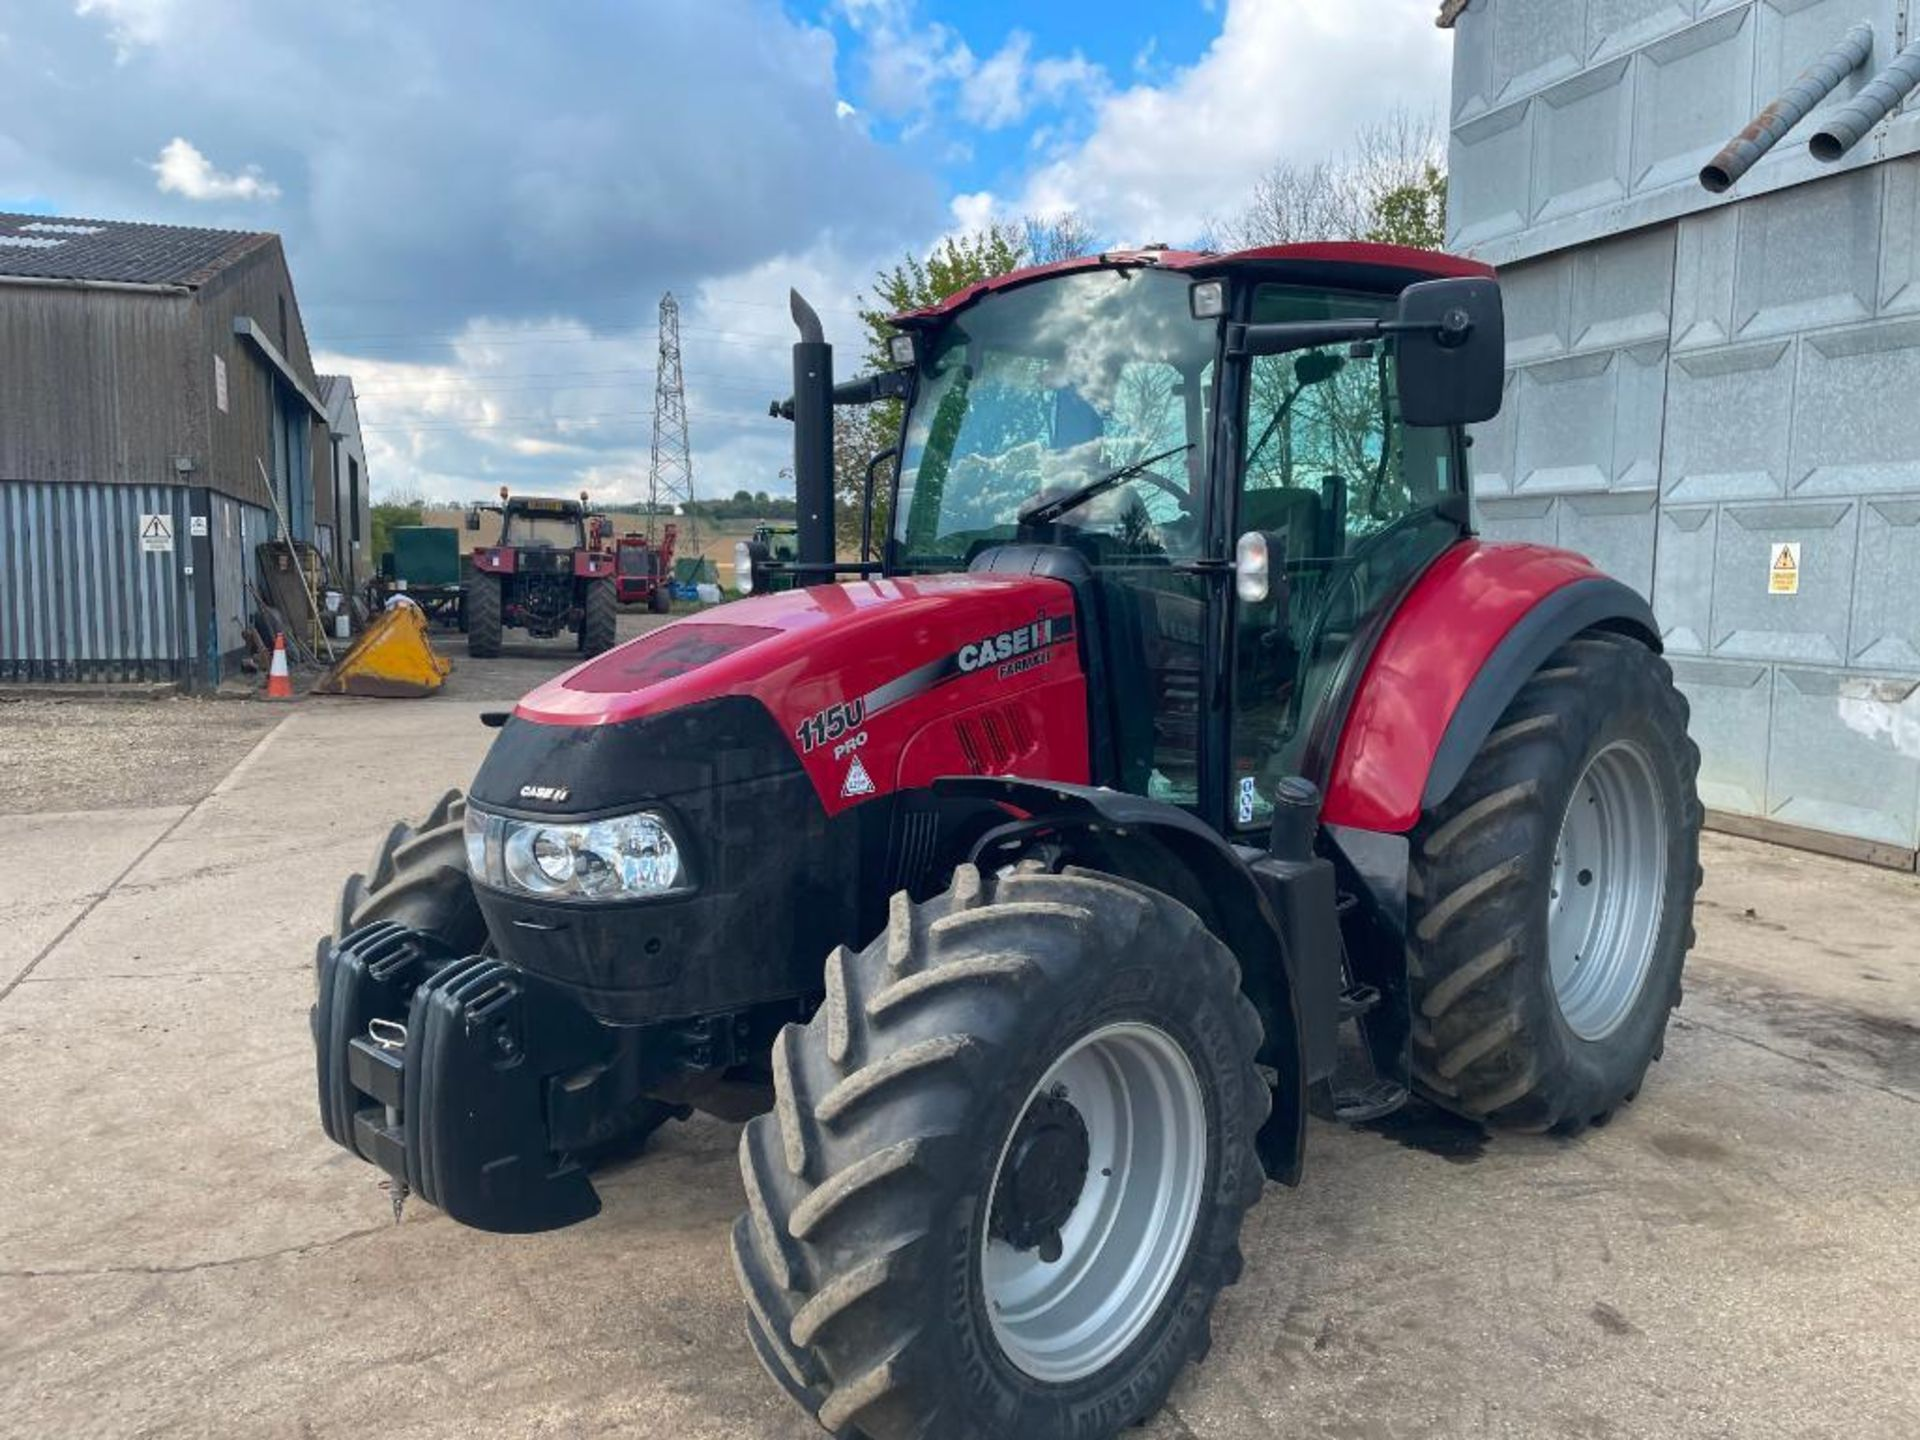 2014 Case IH Farmall 115U PRO 40Kph 4wd tractor with 2 spools, PUH on 440/65R24 front and 540/65R34 - Image 9 of 10